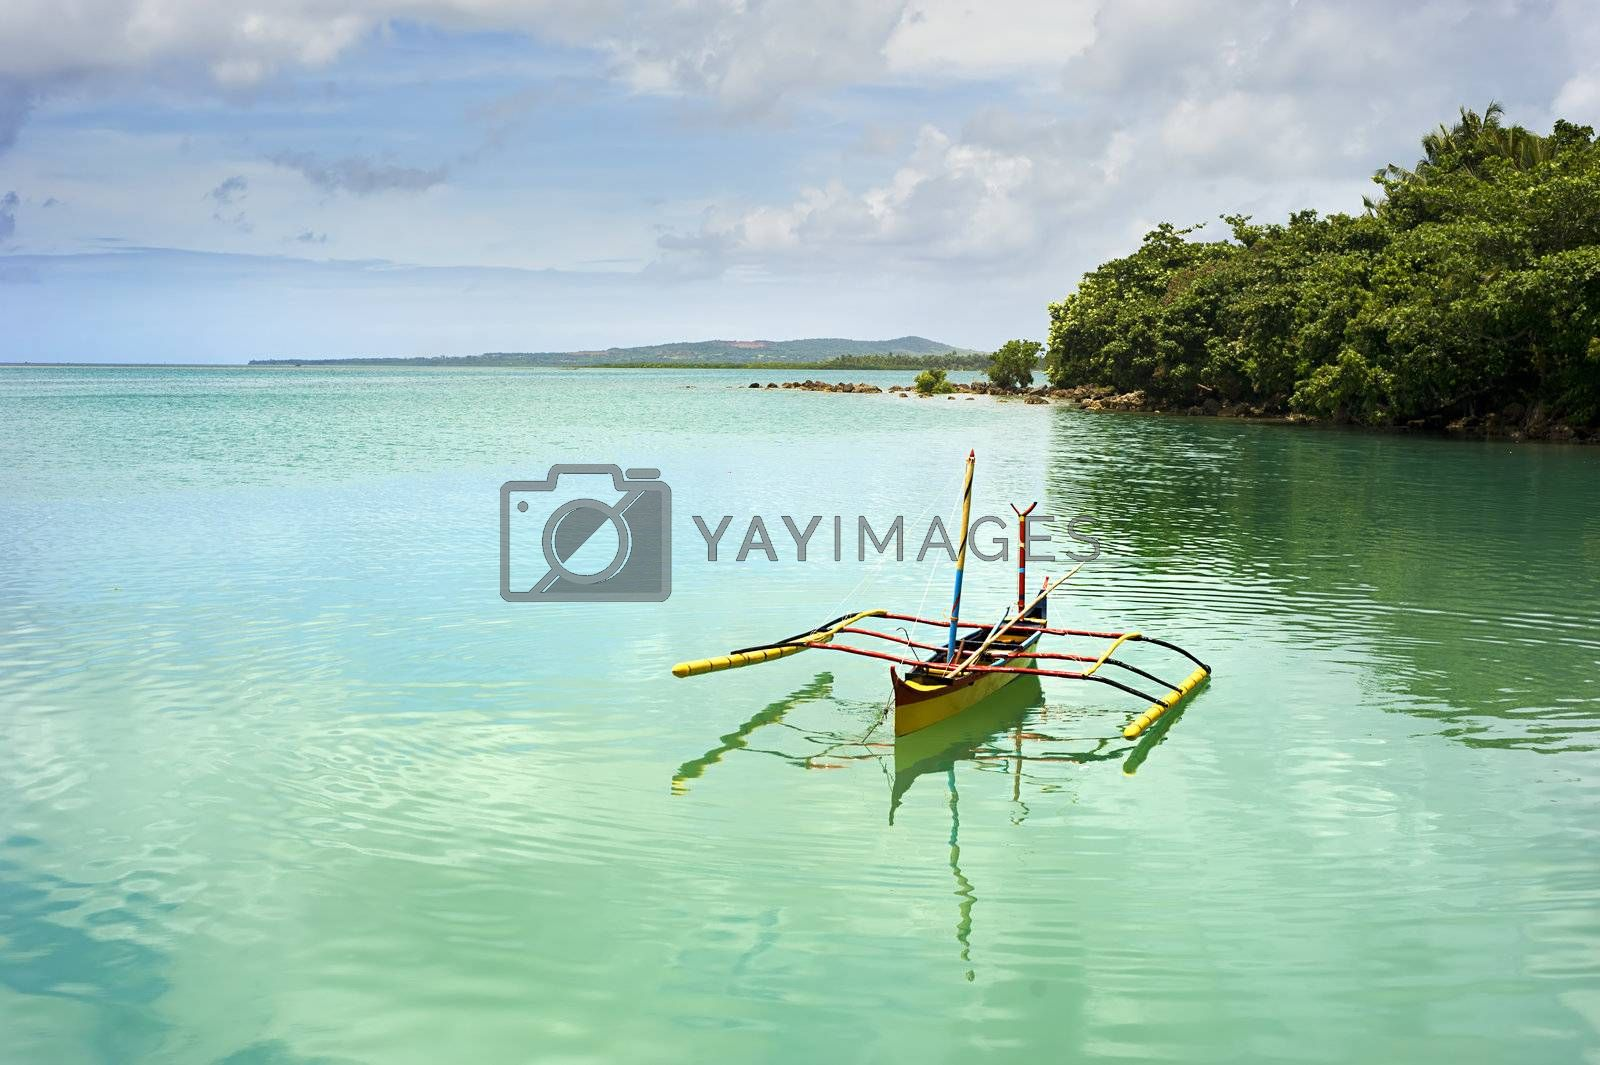 Tropical landscape with traditional Philippines boat on Calicoan island, Philippines